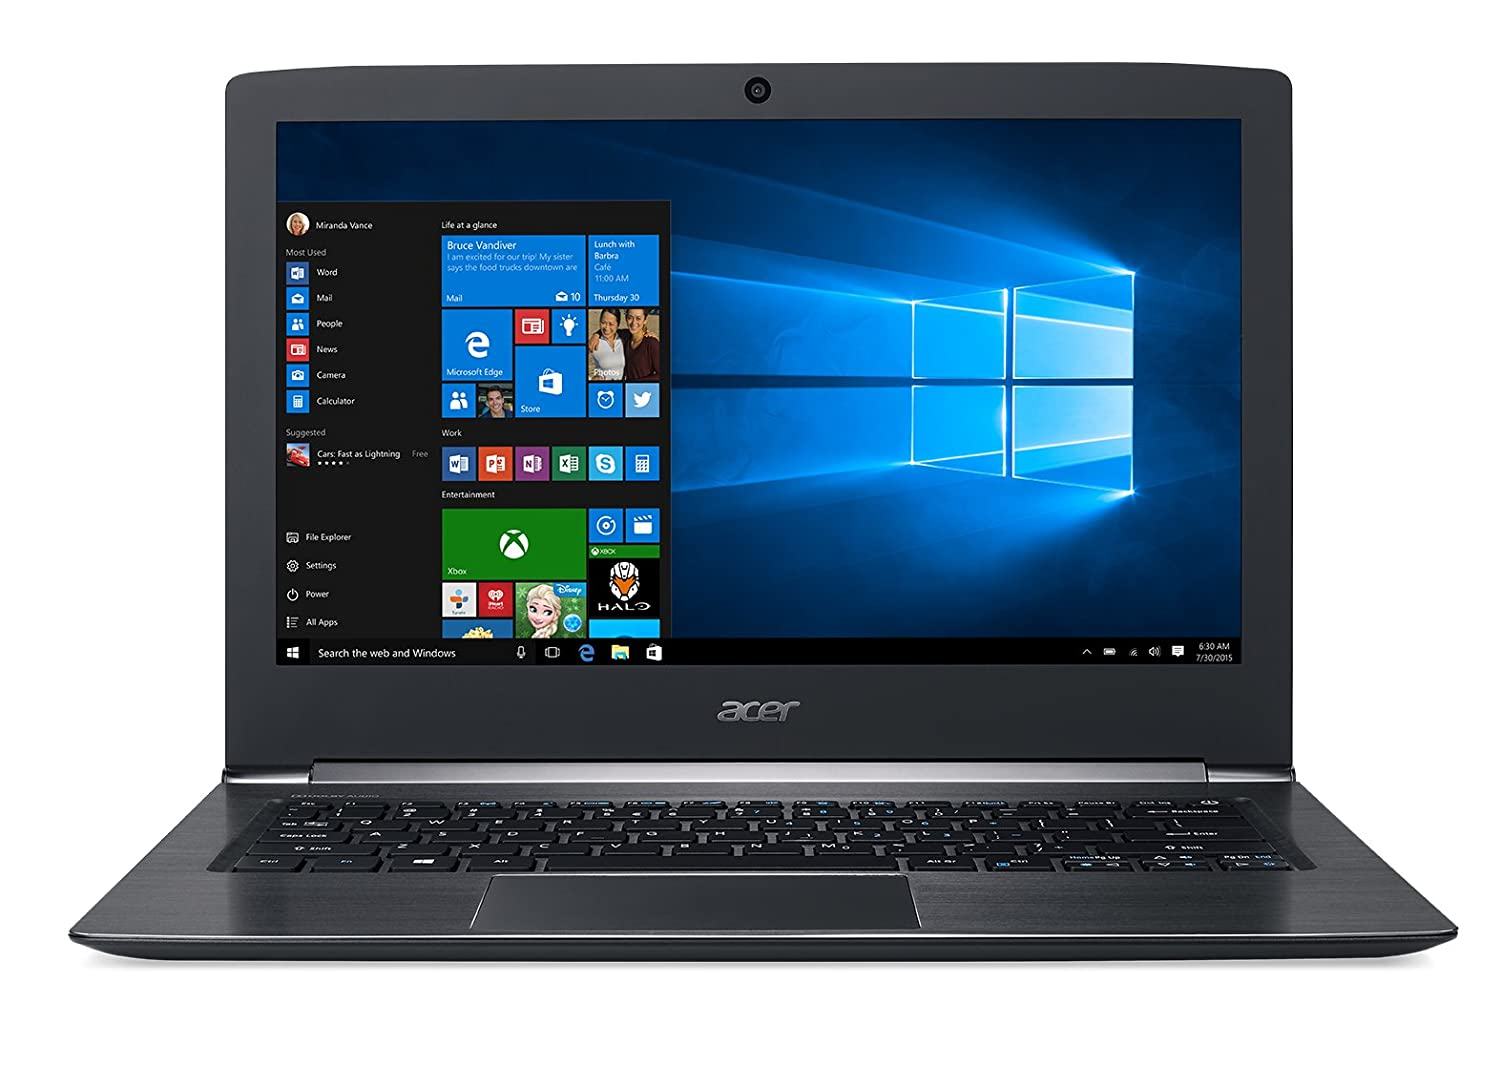 Acer Aspire S13 Black Friday Deal 2019